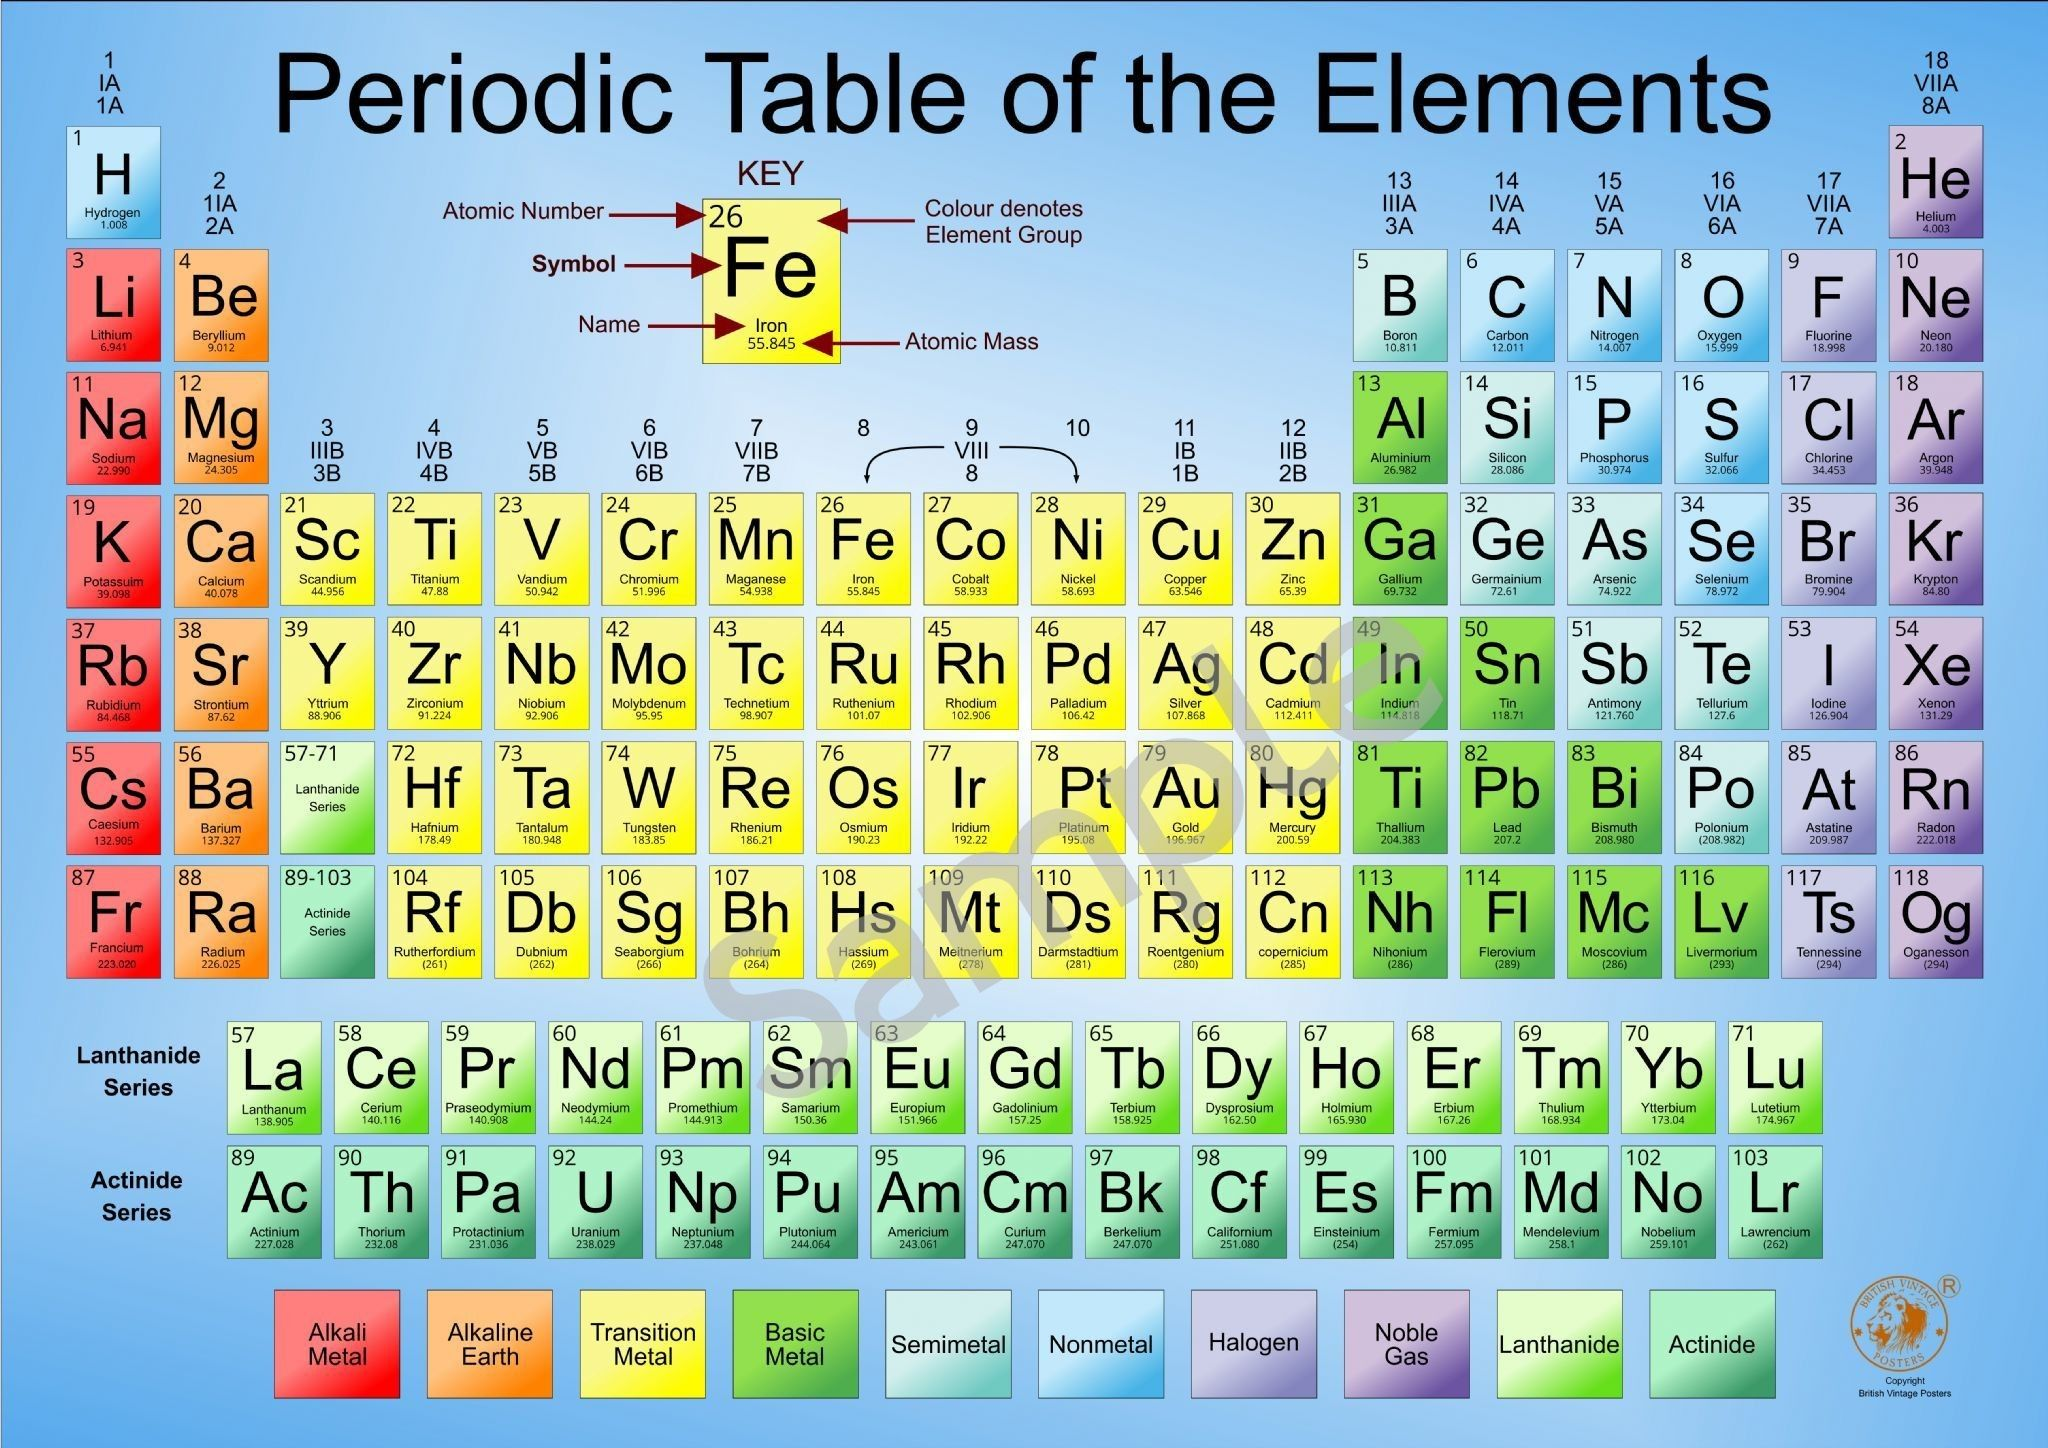 Pin by Zavalen Priodic on Table Priodic Sample | Element